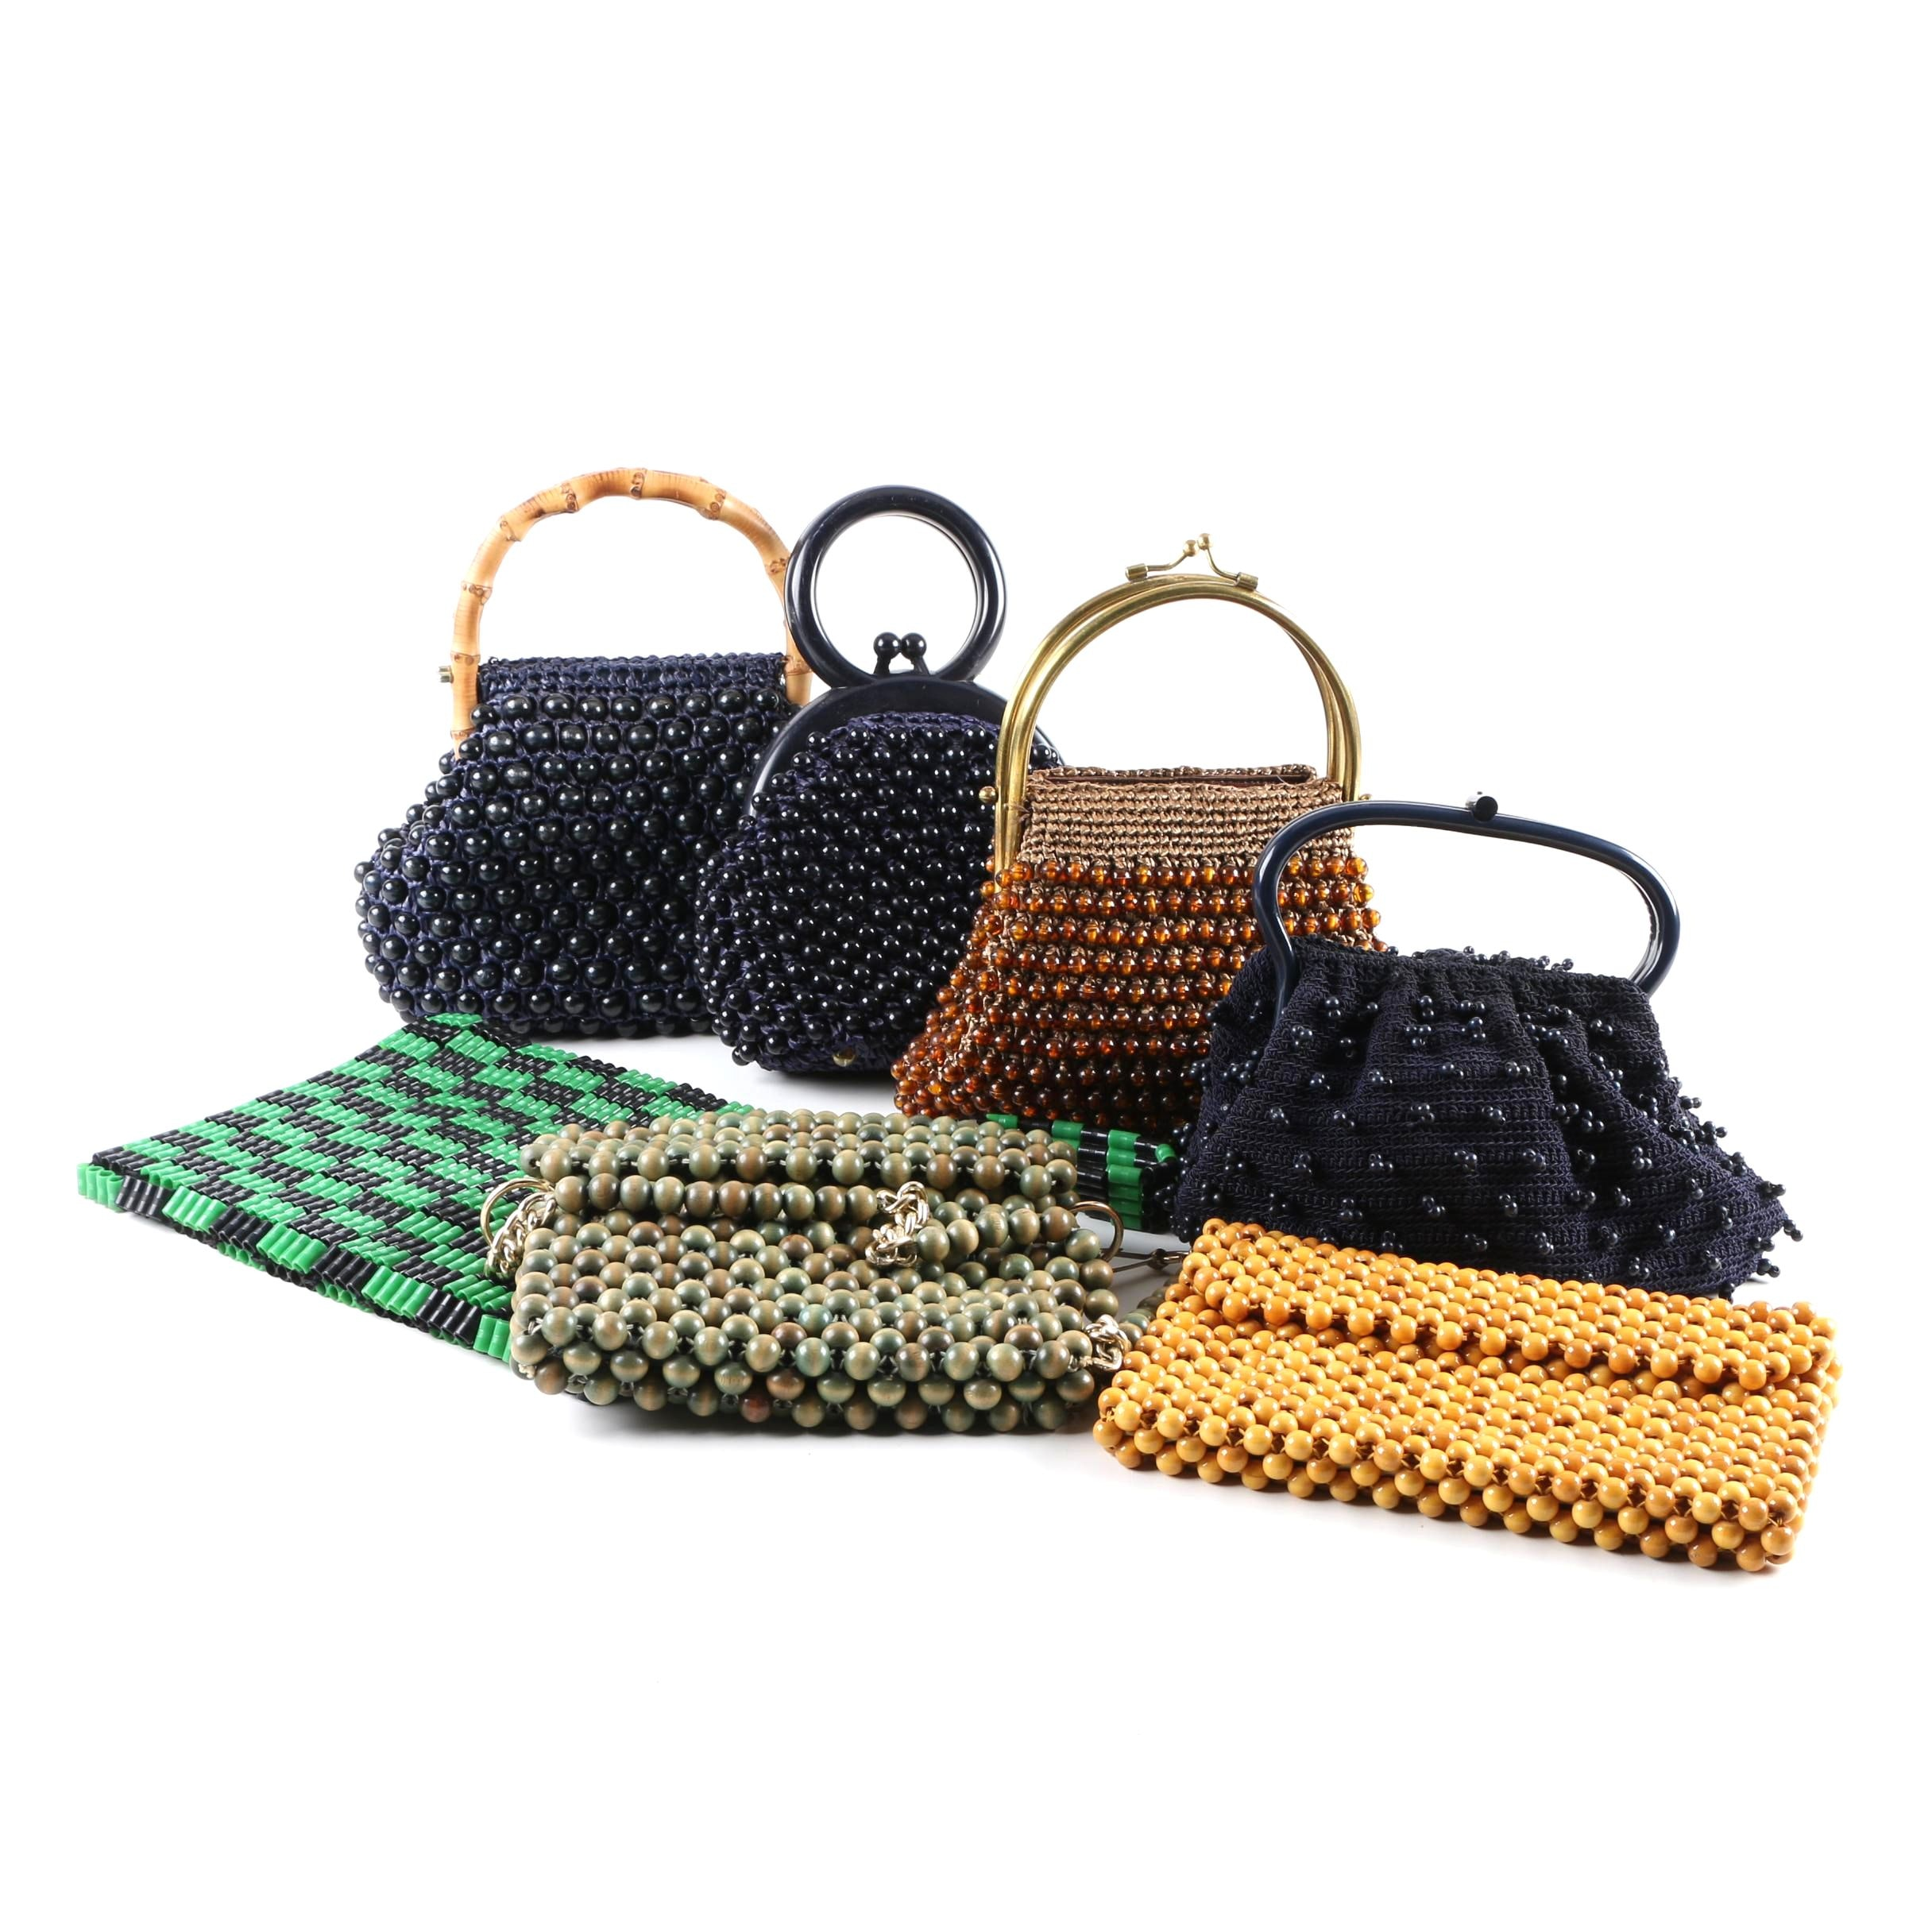 Circa 1970s Woven and Beaded Bags Including Simon, Marcus Brothers and Walborg